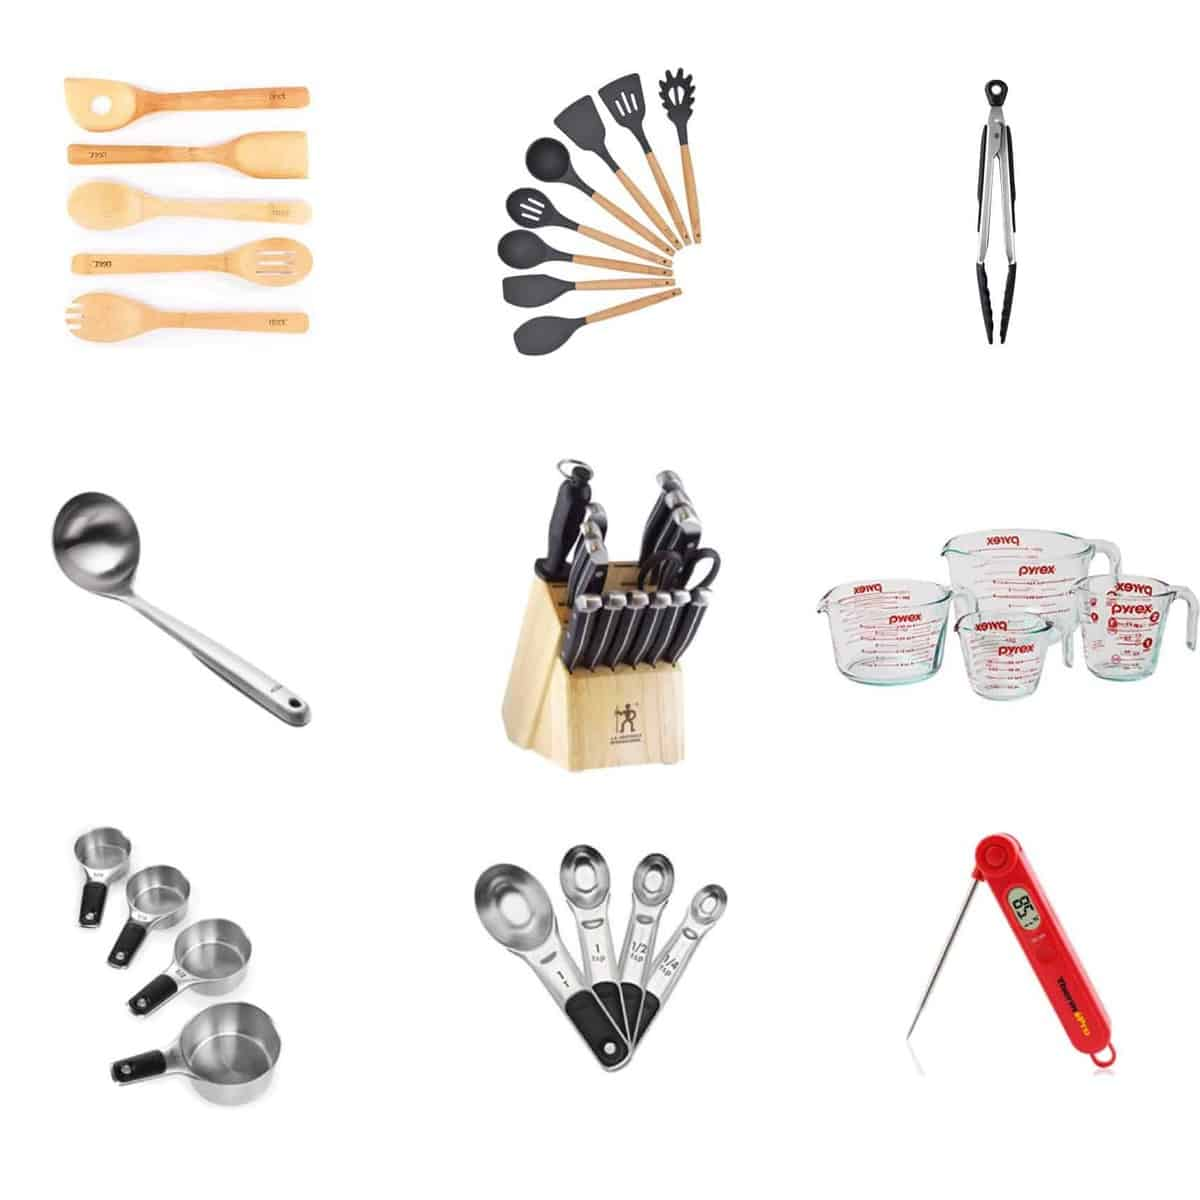 Favorite Non Toxic Kitchen Utensils And Small Gadgets